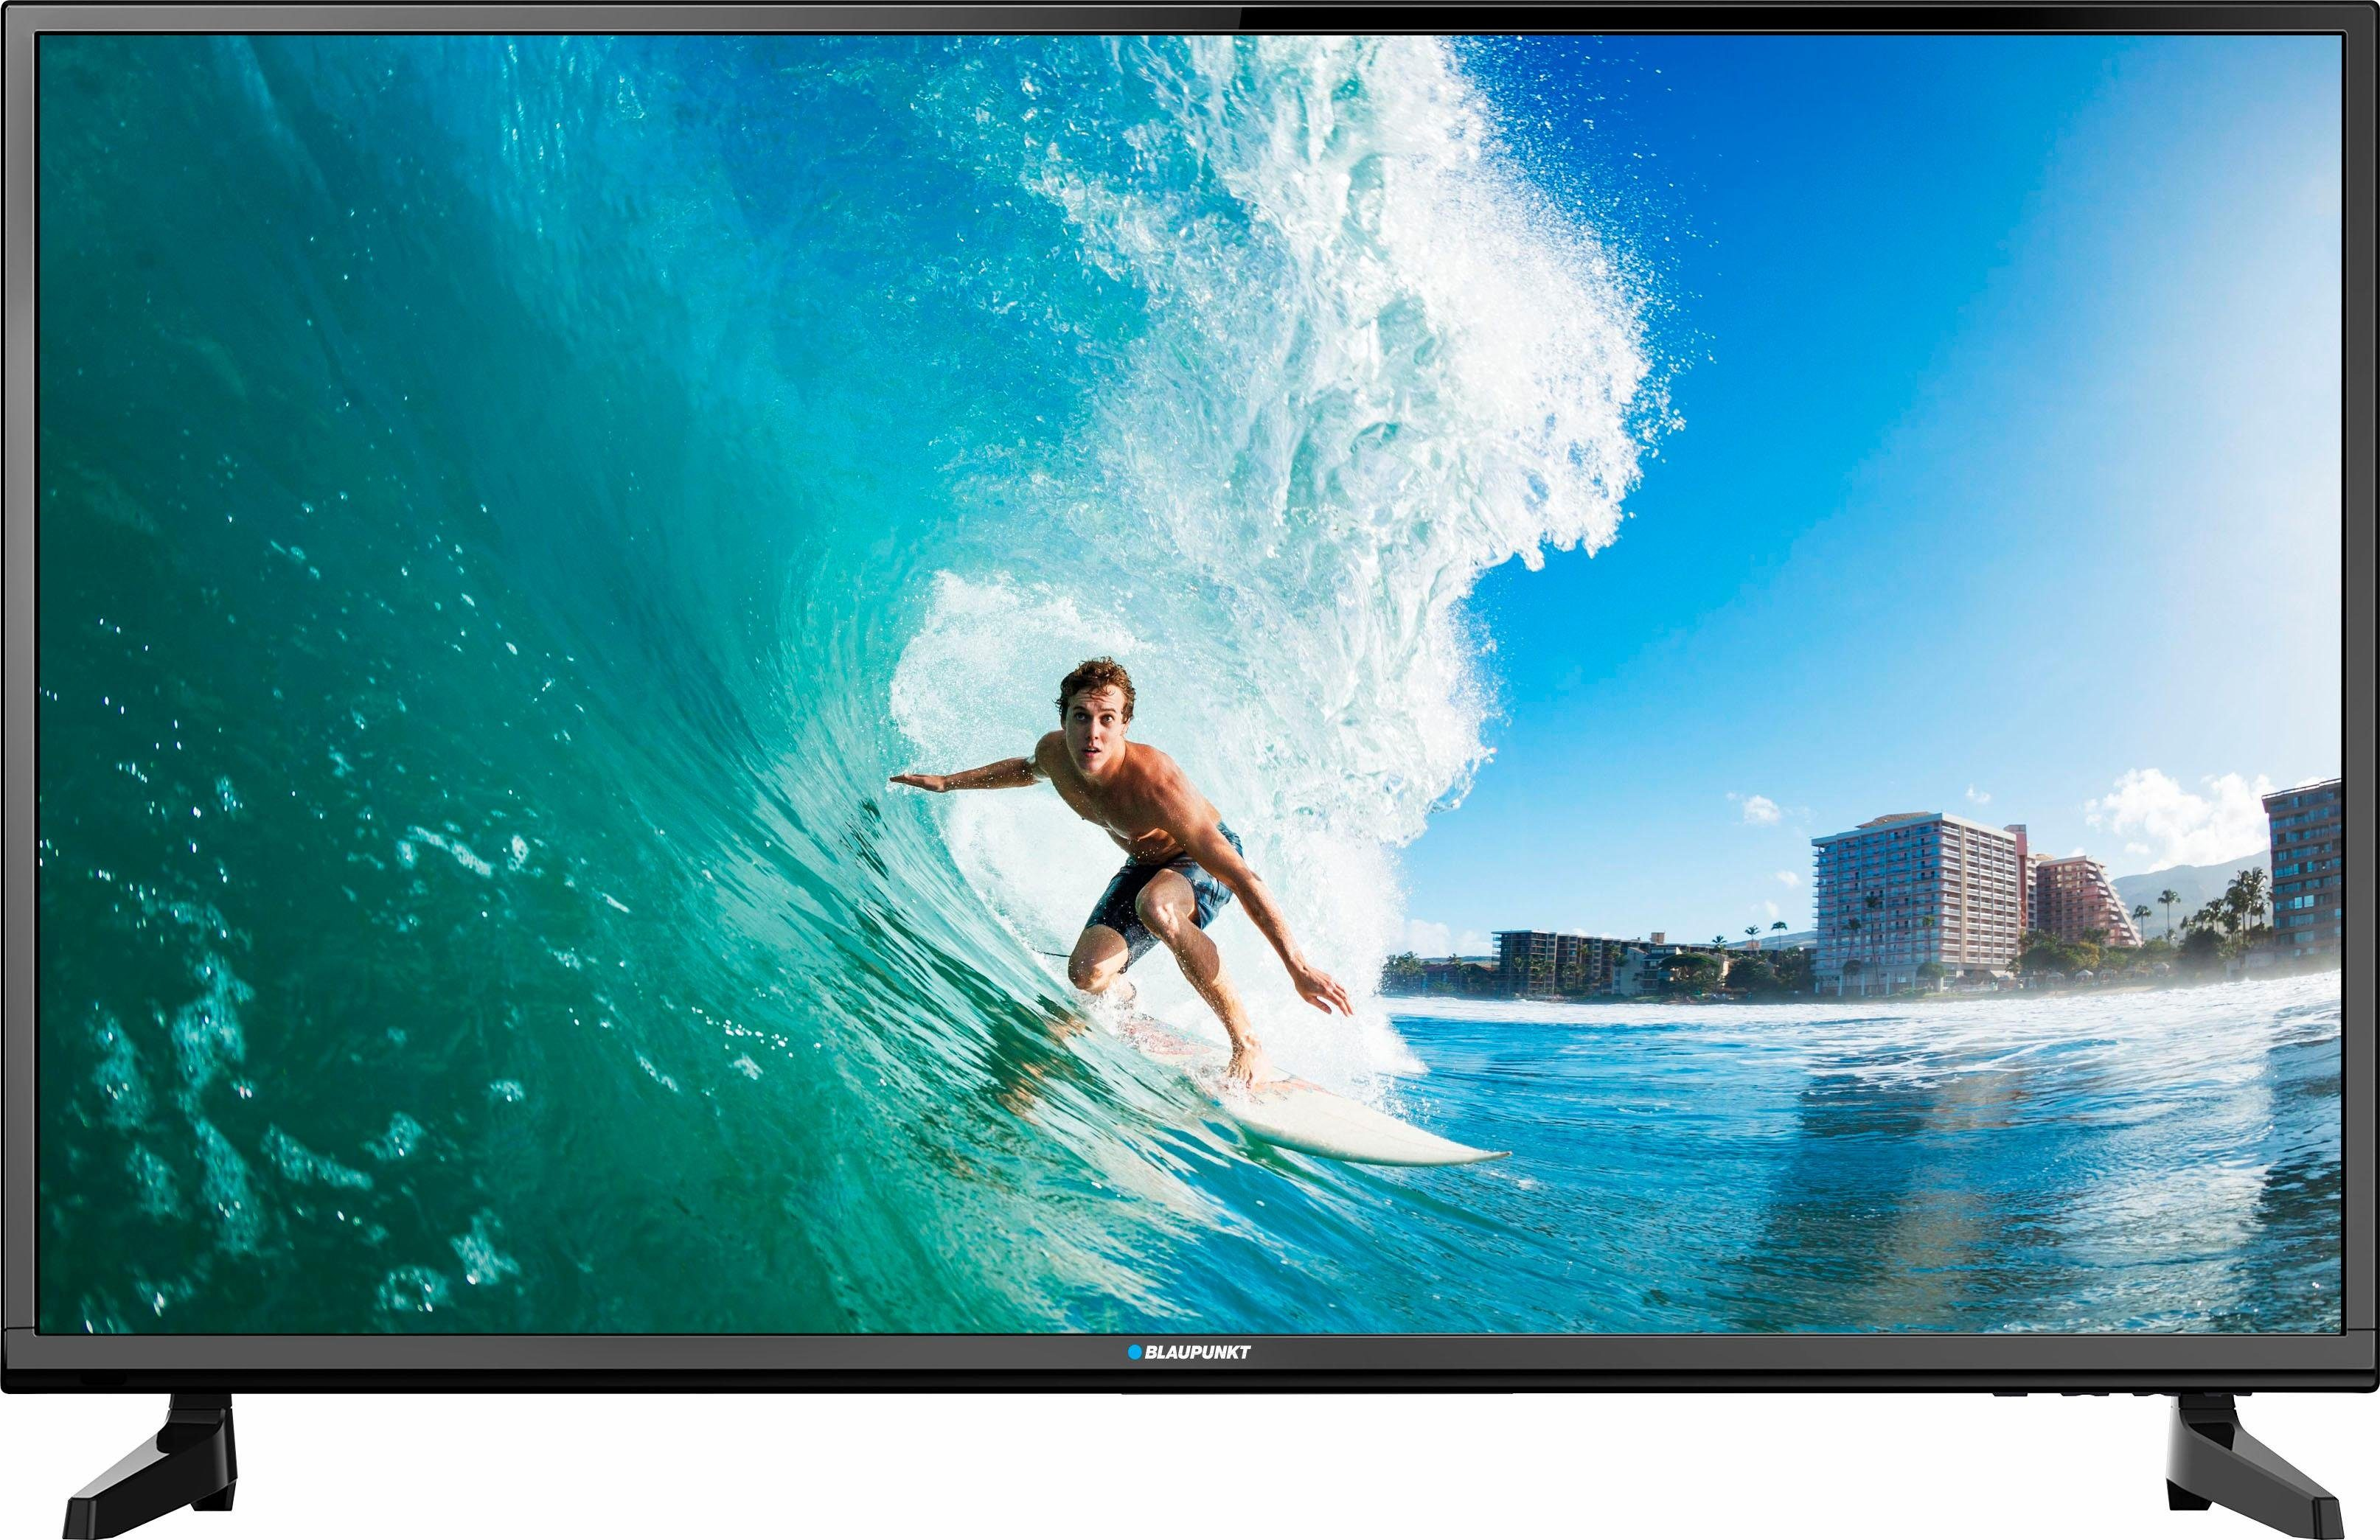 Blaupunkt B49M148T2CS Smart, LED Fernseher, 123 cm (49 Zoll), 1080p (Full HD), Smart-TV